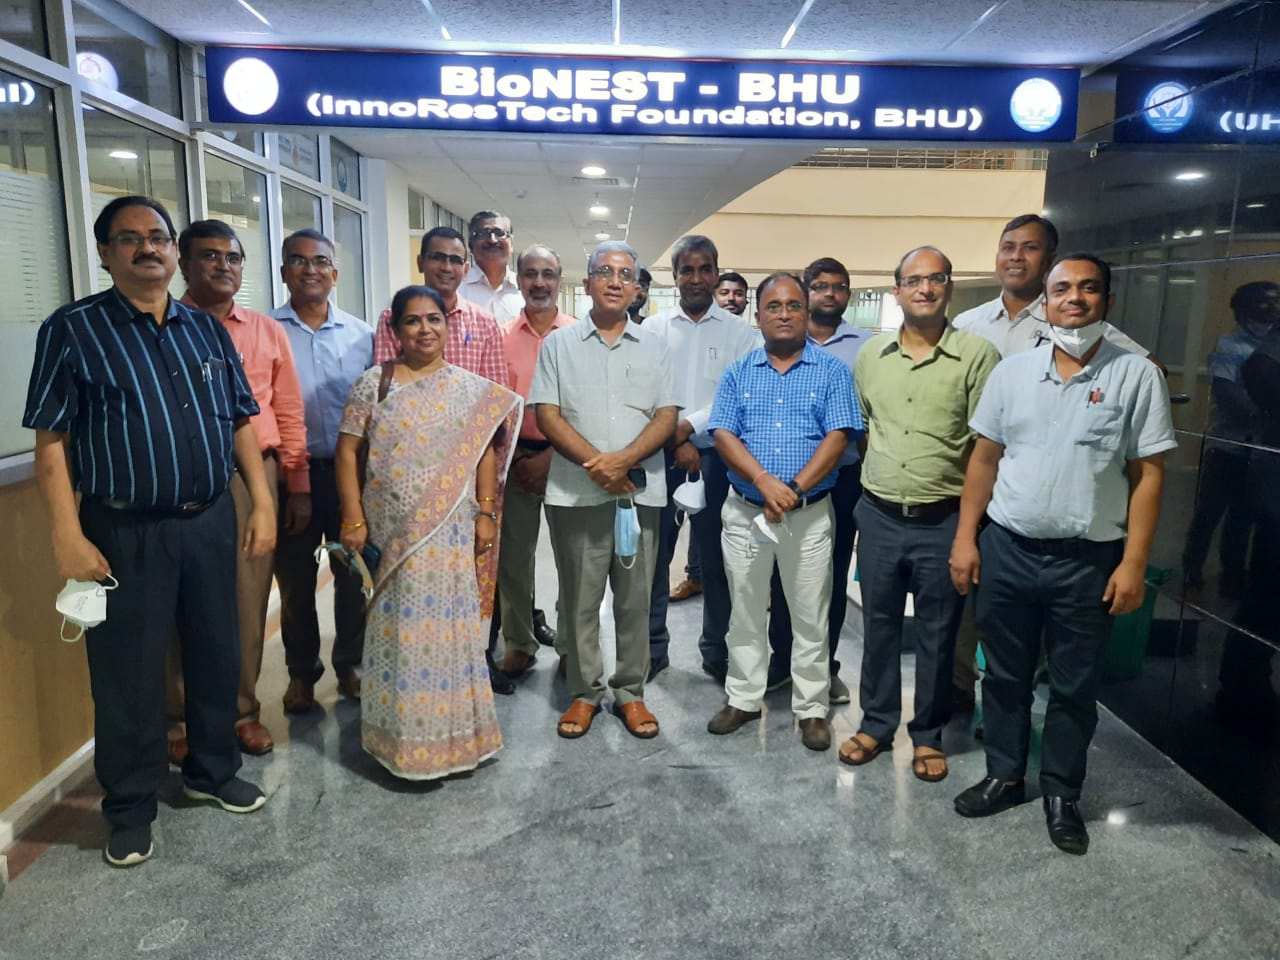 BioNEST Executive Committee